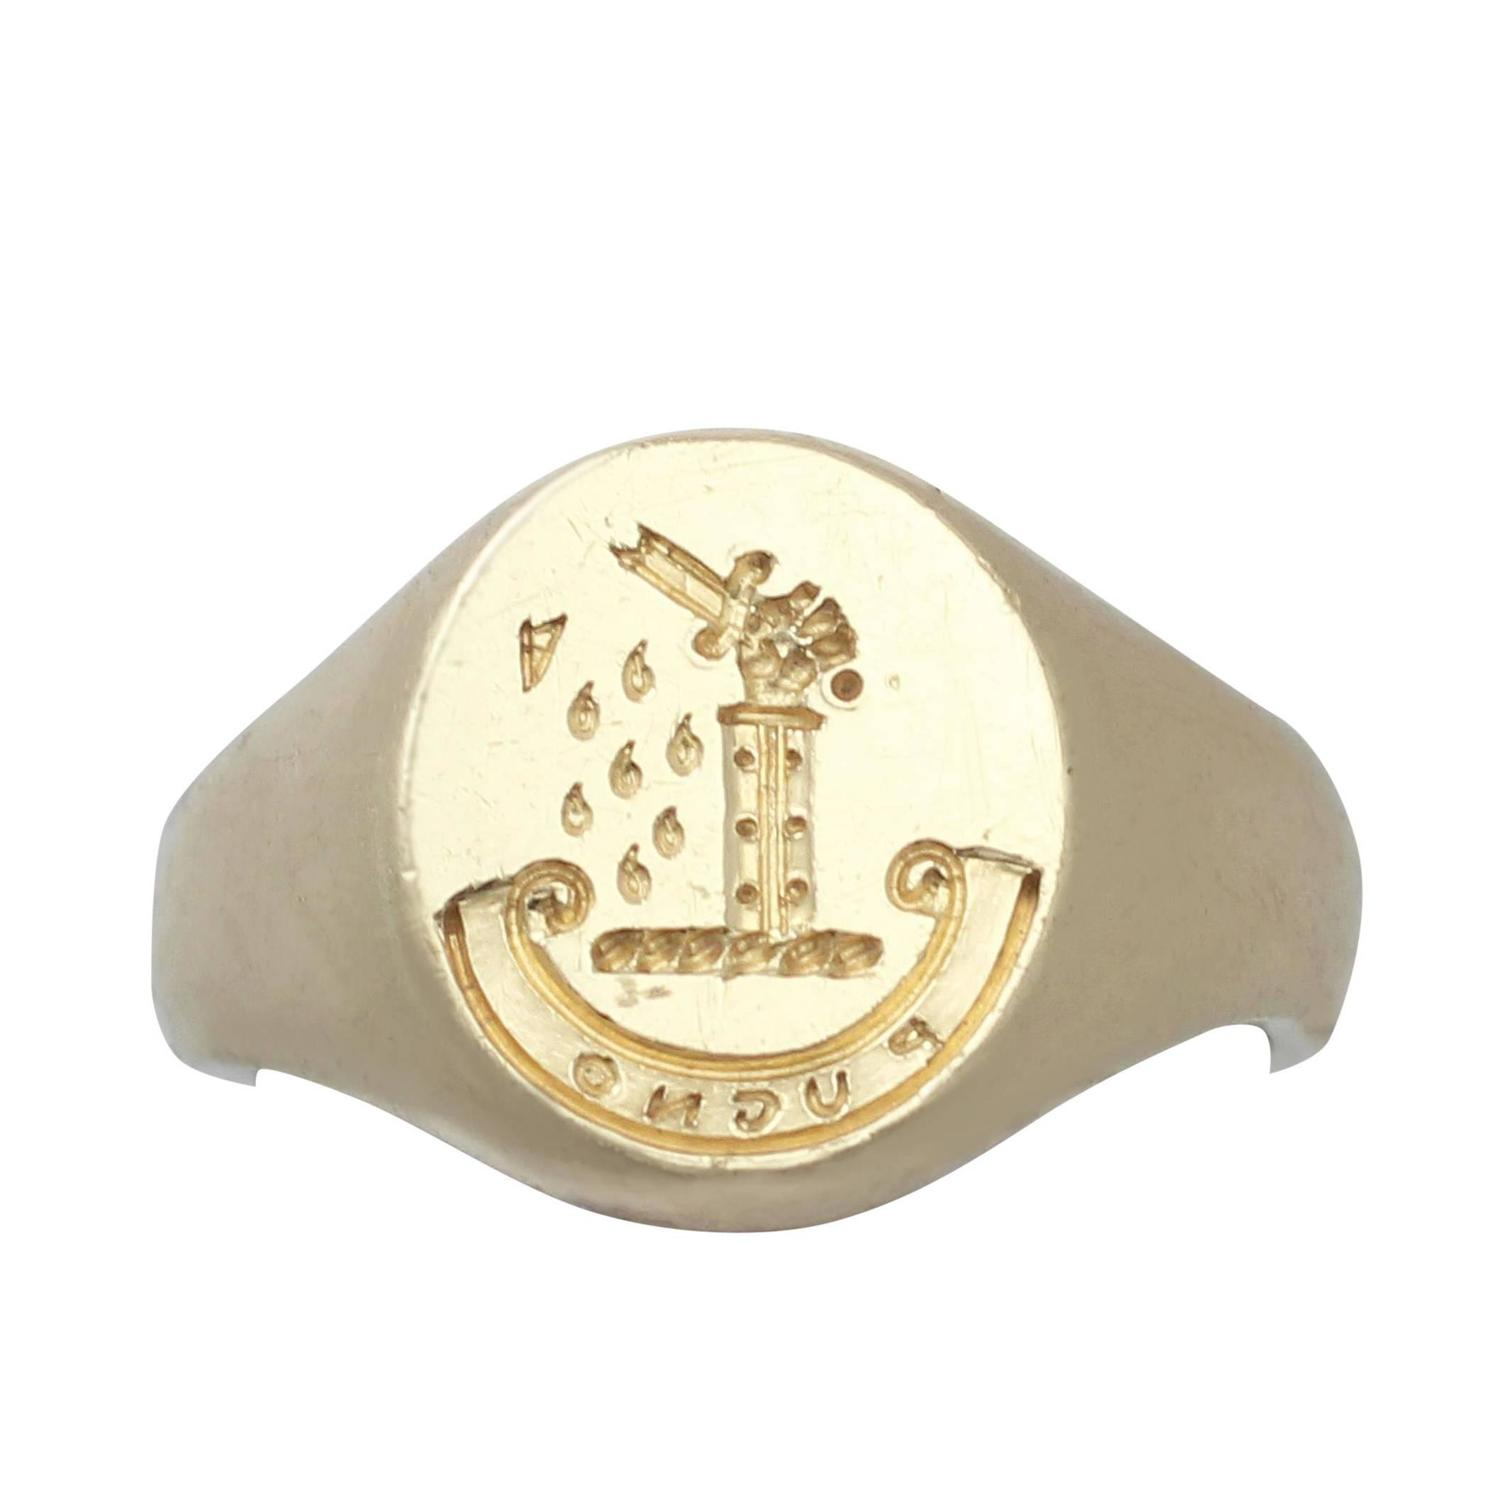 18 ct Yellow Gold Signet Ring  Vintage 1944 at 1stdibs